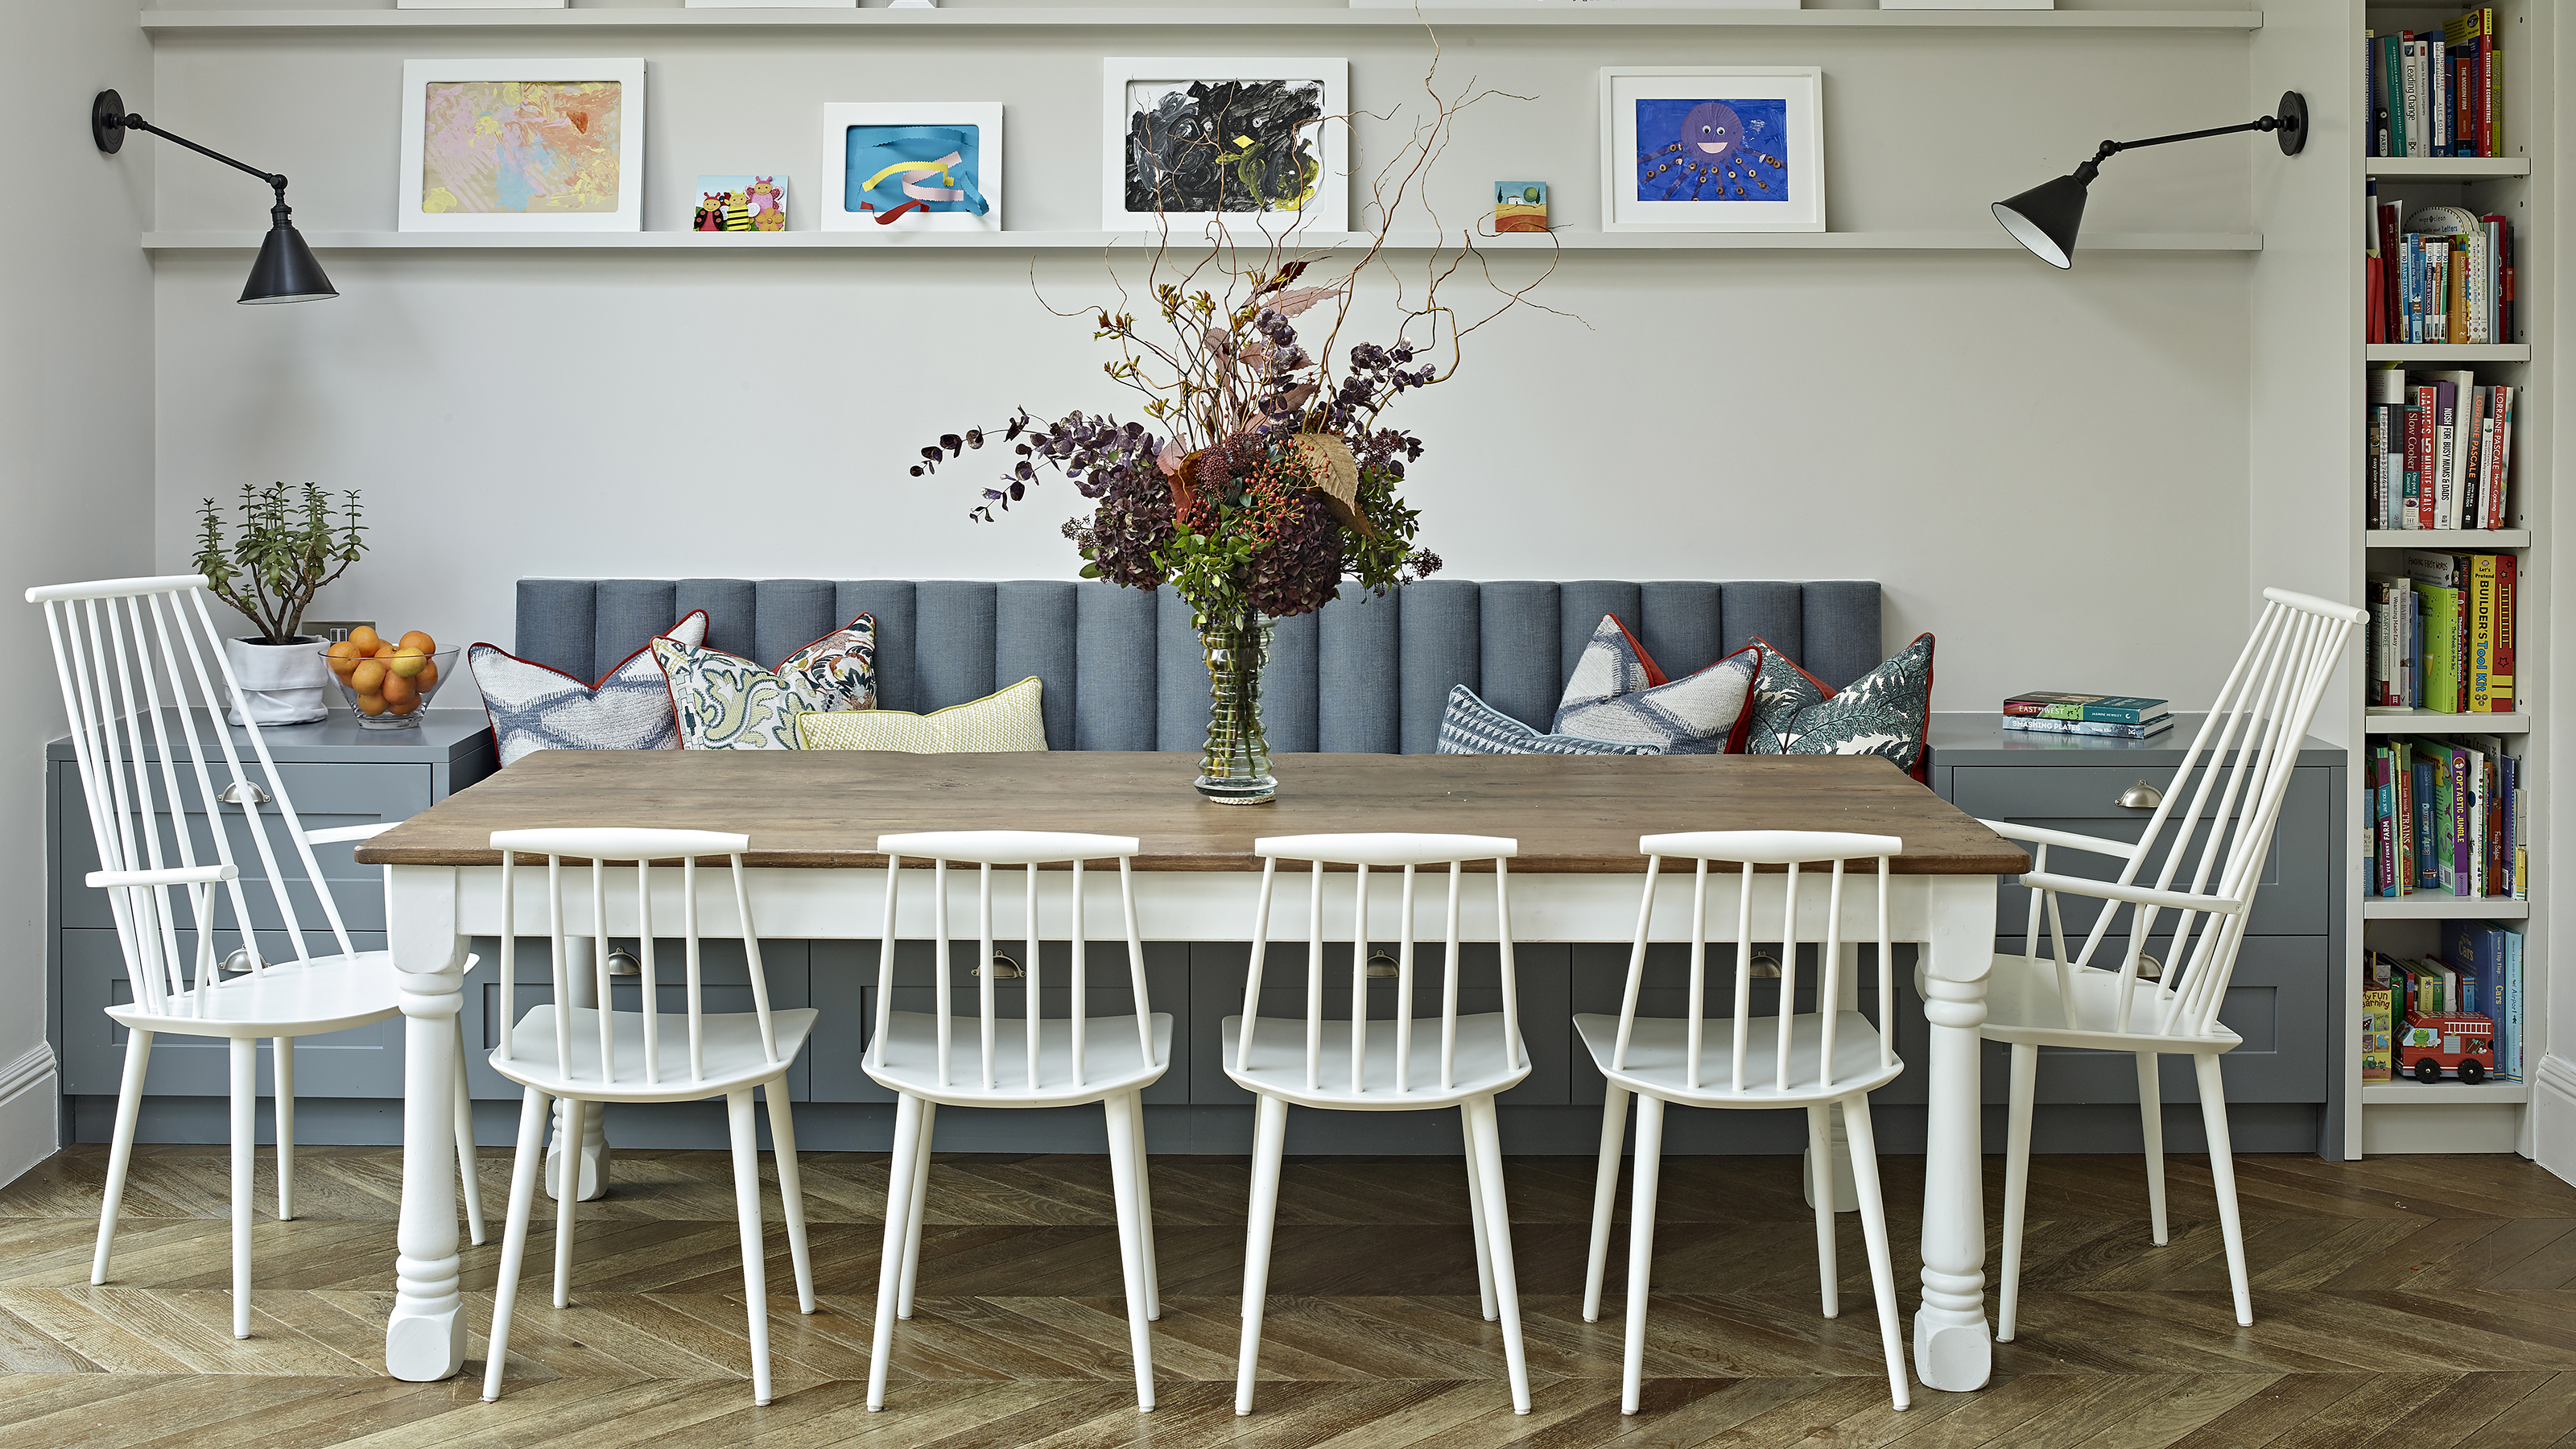 Banquette Seating Ideas For A Stylish, Built In Banquette Seating Dining Room